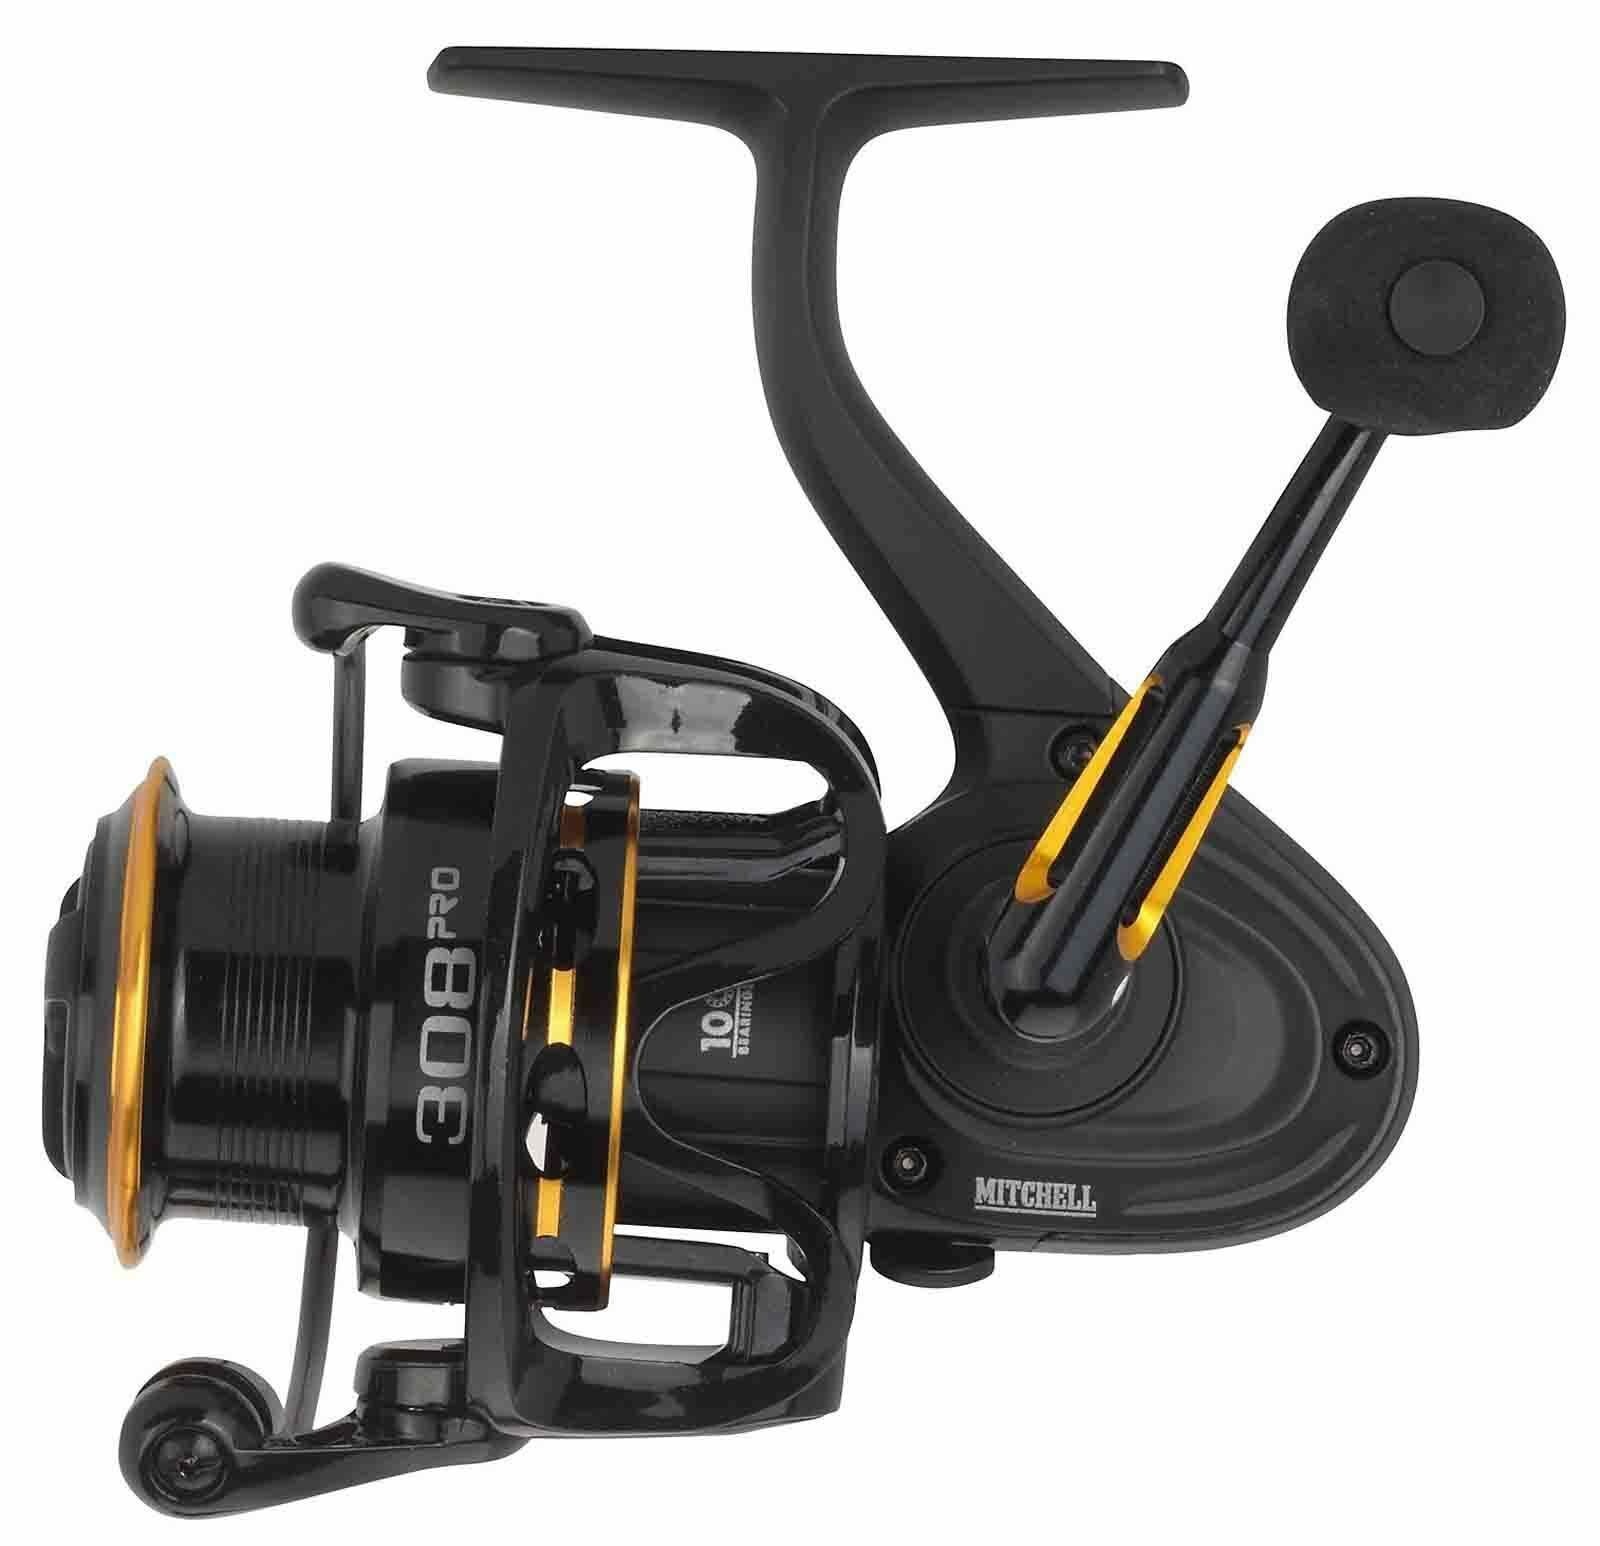 MITCHELL 308 PRO FRONT DRAG FIXED SPOOL SPINNING REEL